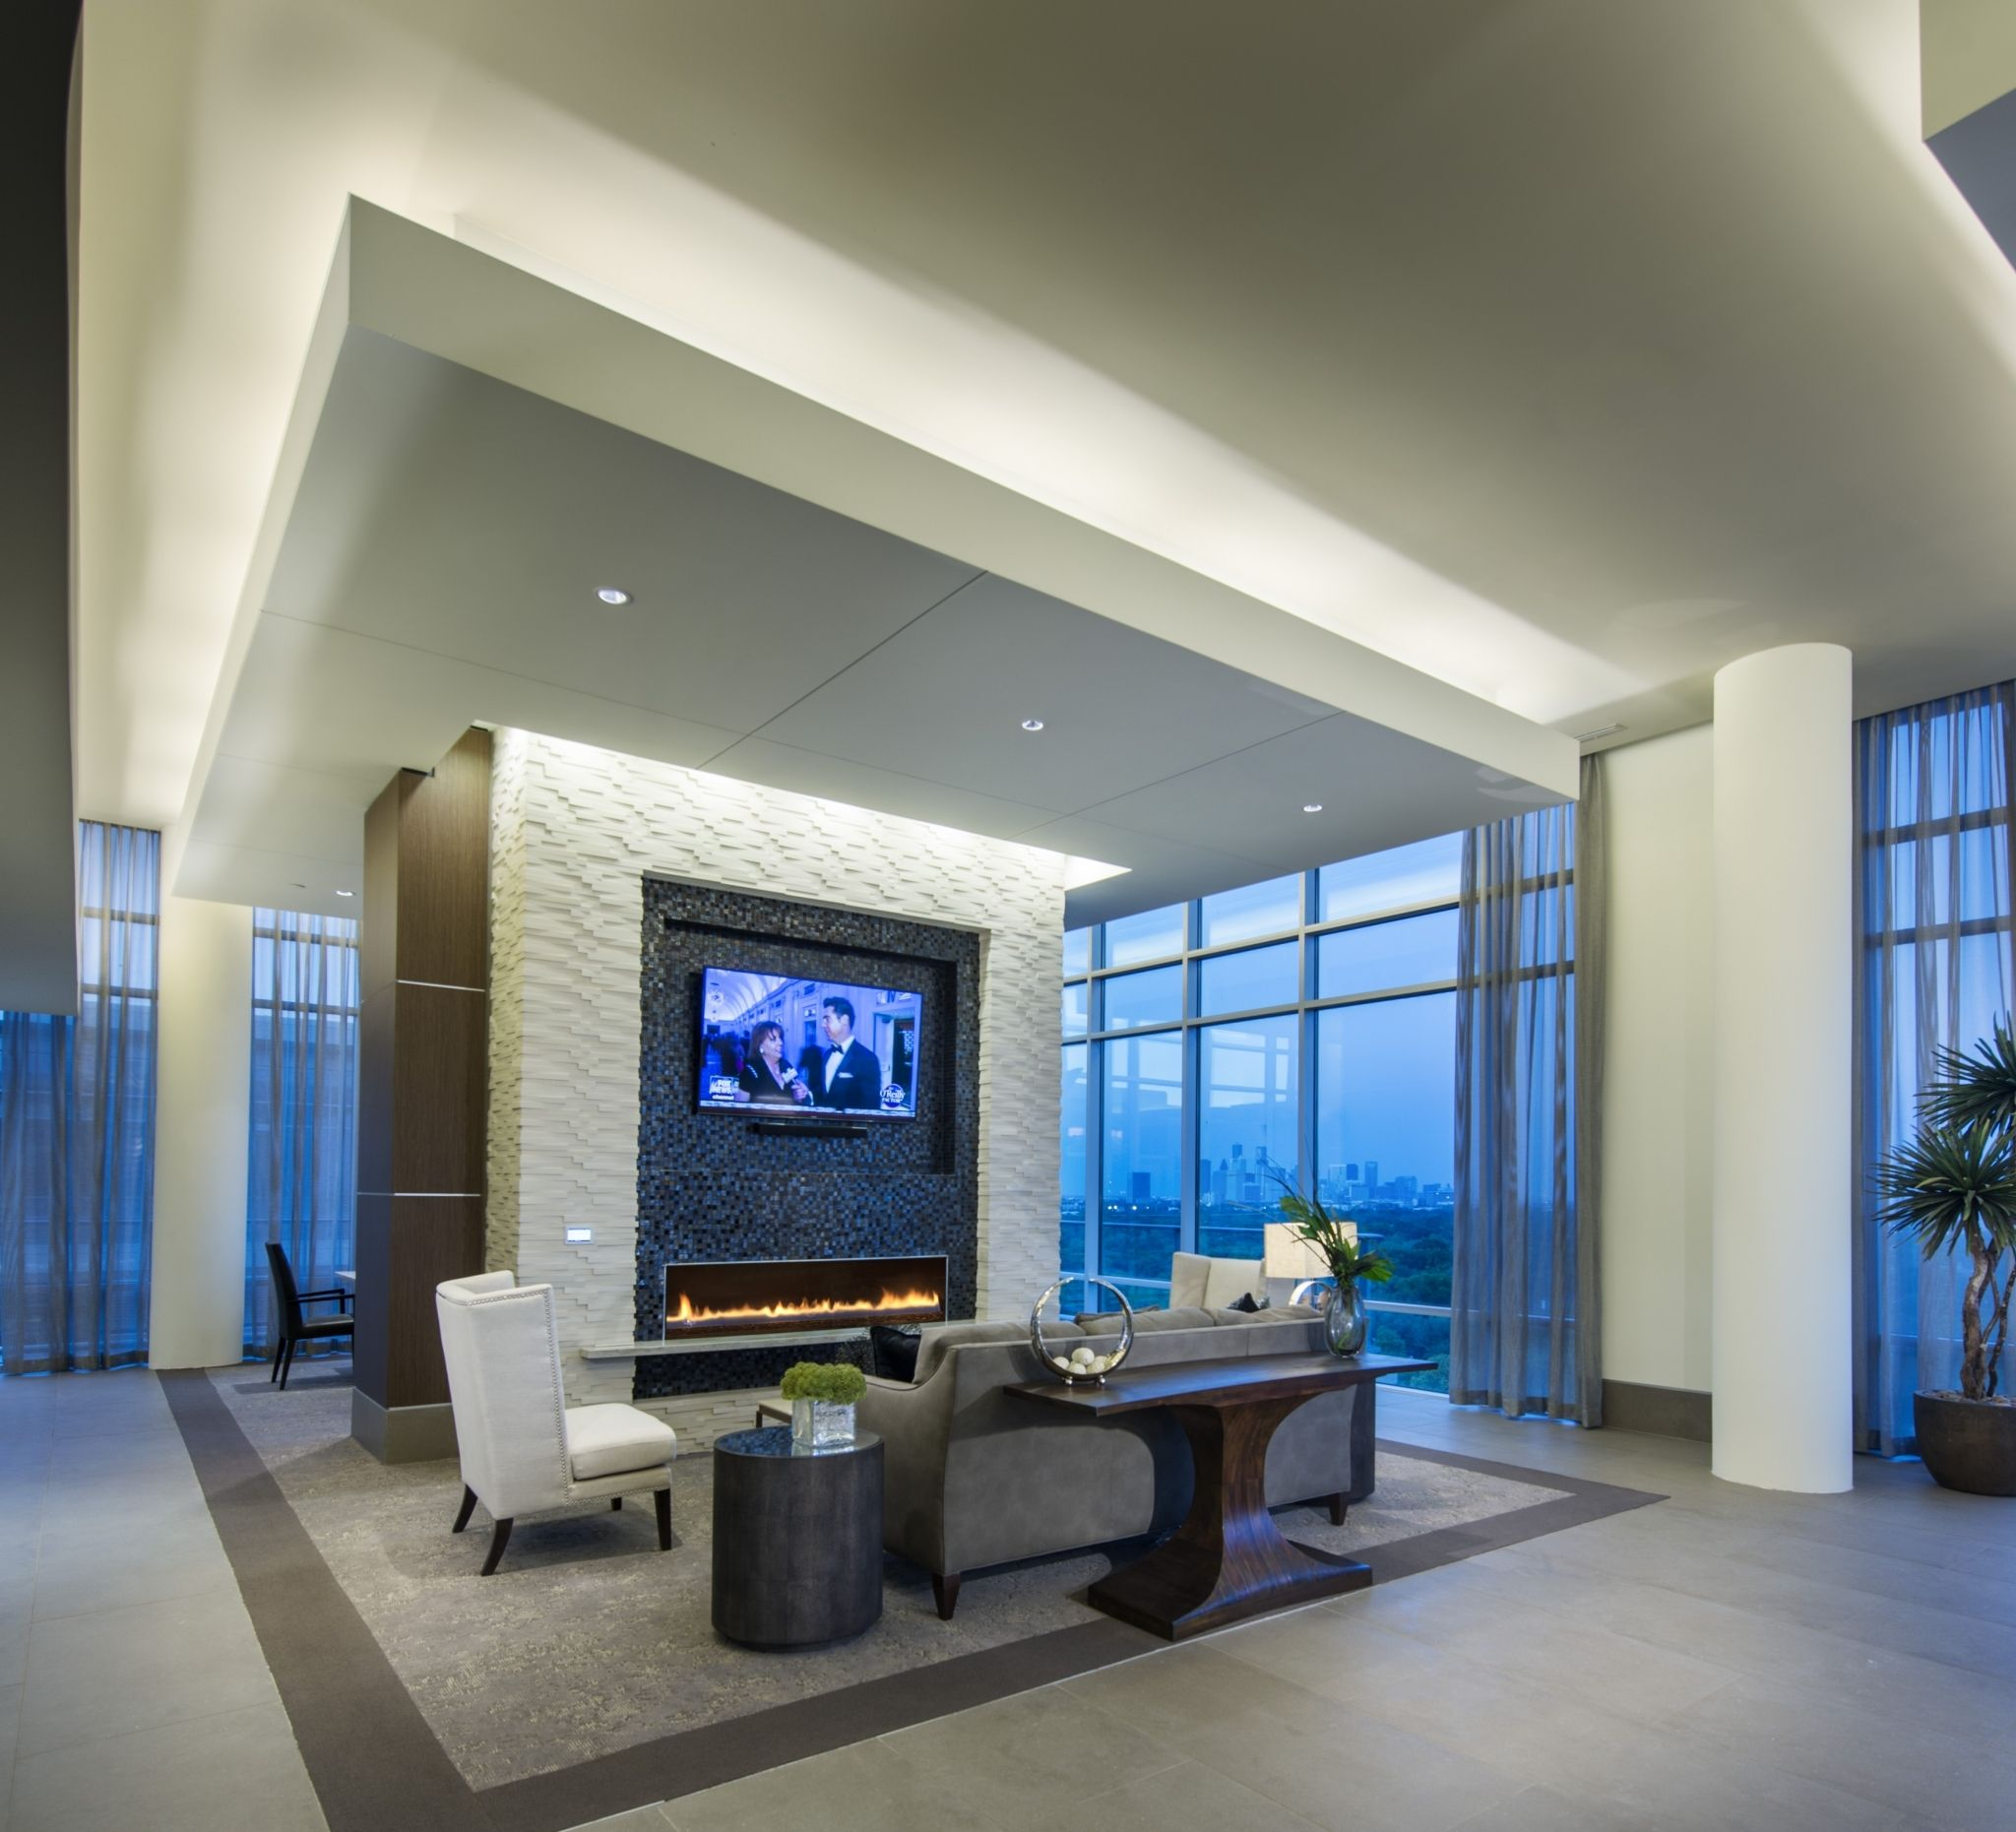 Gallery ǀ Luxury Apartments In Houston Tx ǀ Hanover Southampton High Rise Apartments Luxury Apartments Apartments For Rent